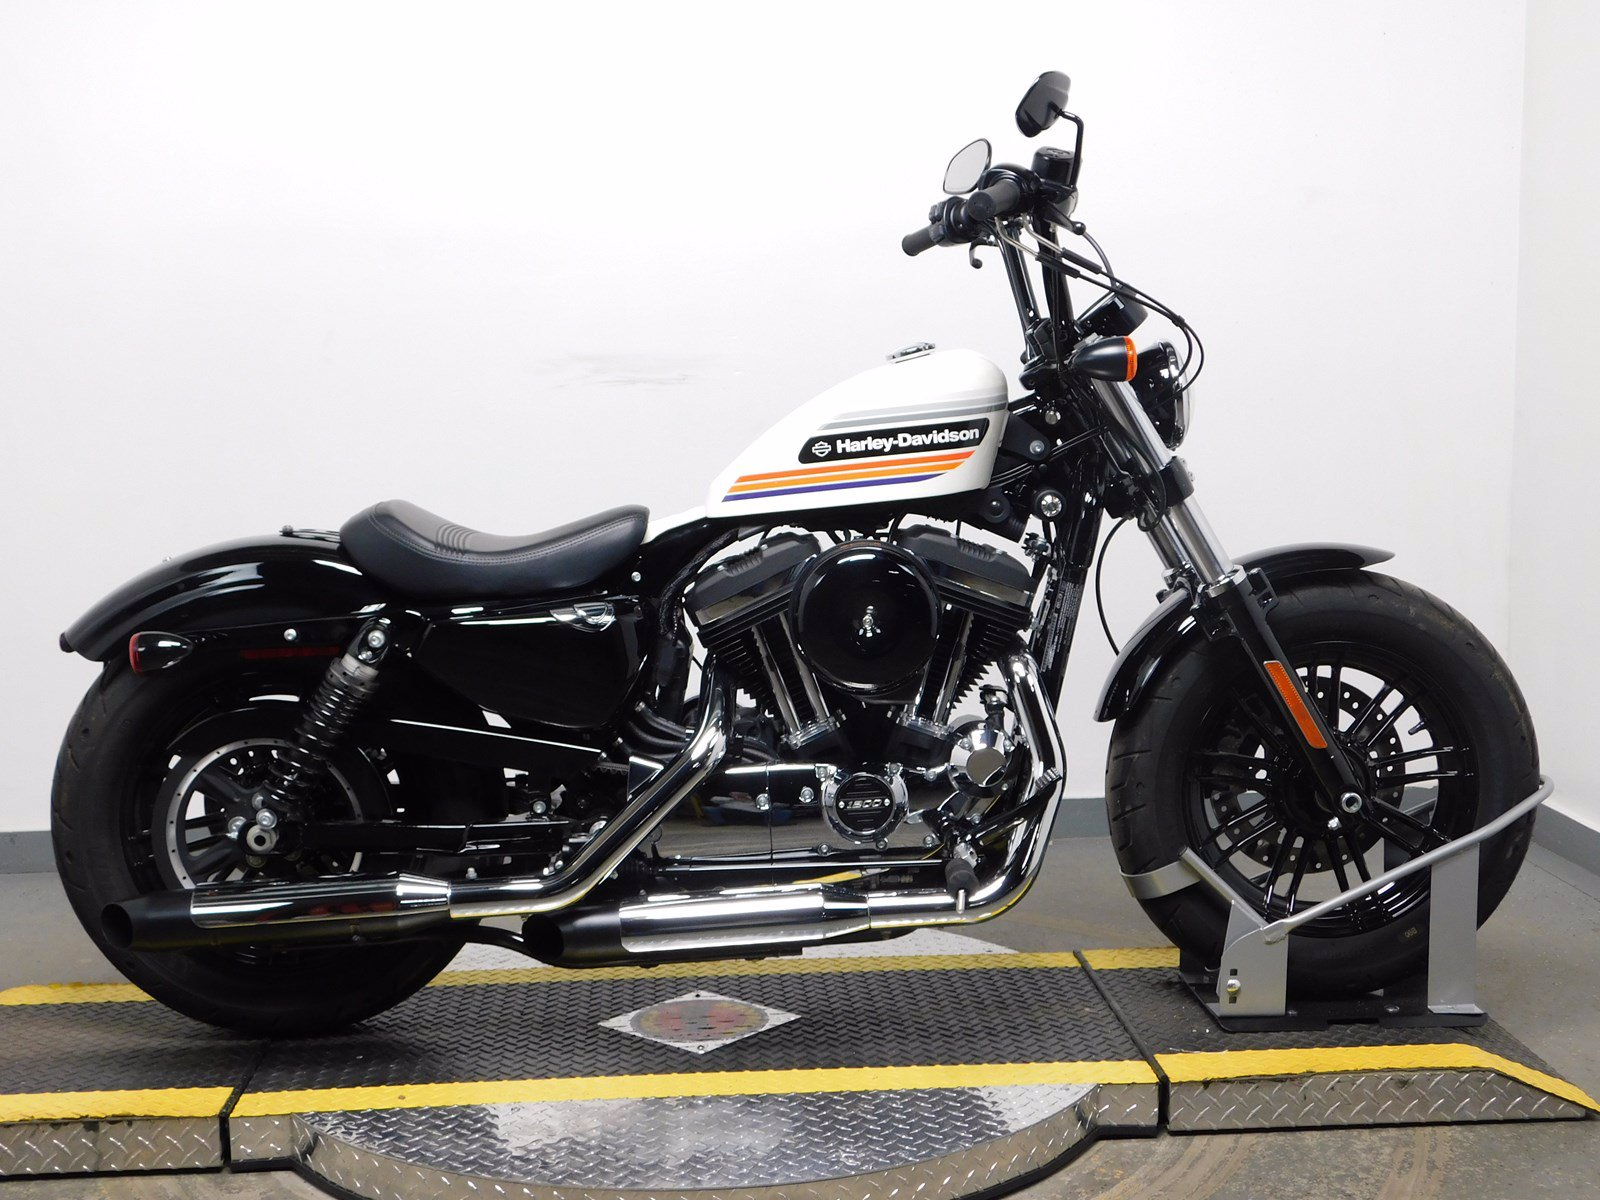 Pre-Owned 2019 Harley-Davidson Sportster Forty-Eight Special XL1200XS Sportster